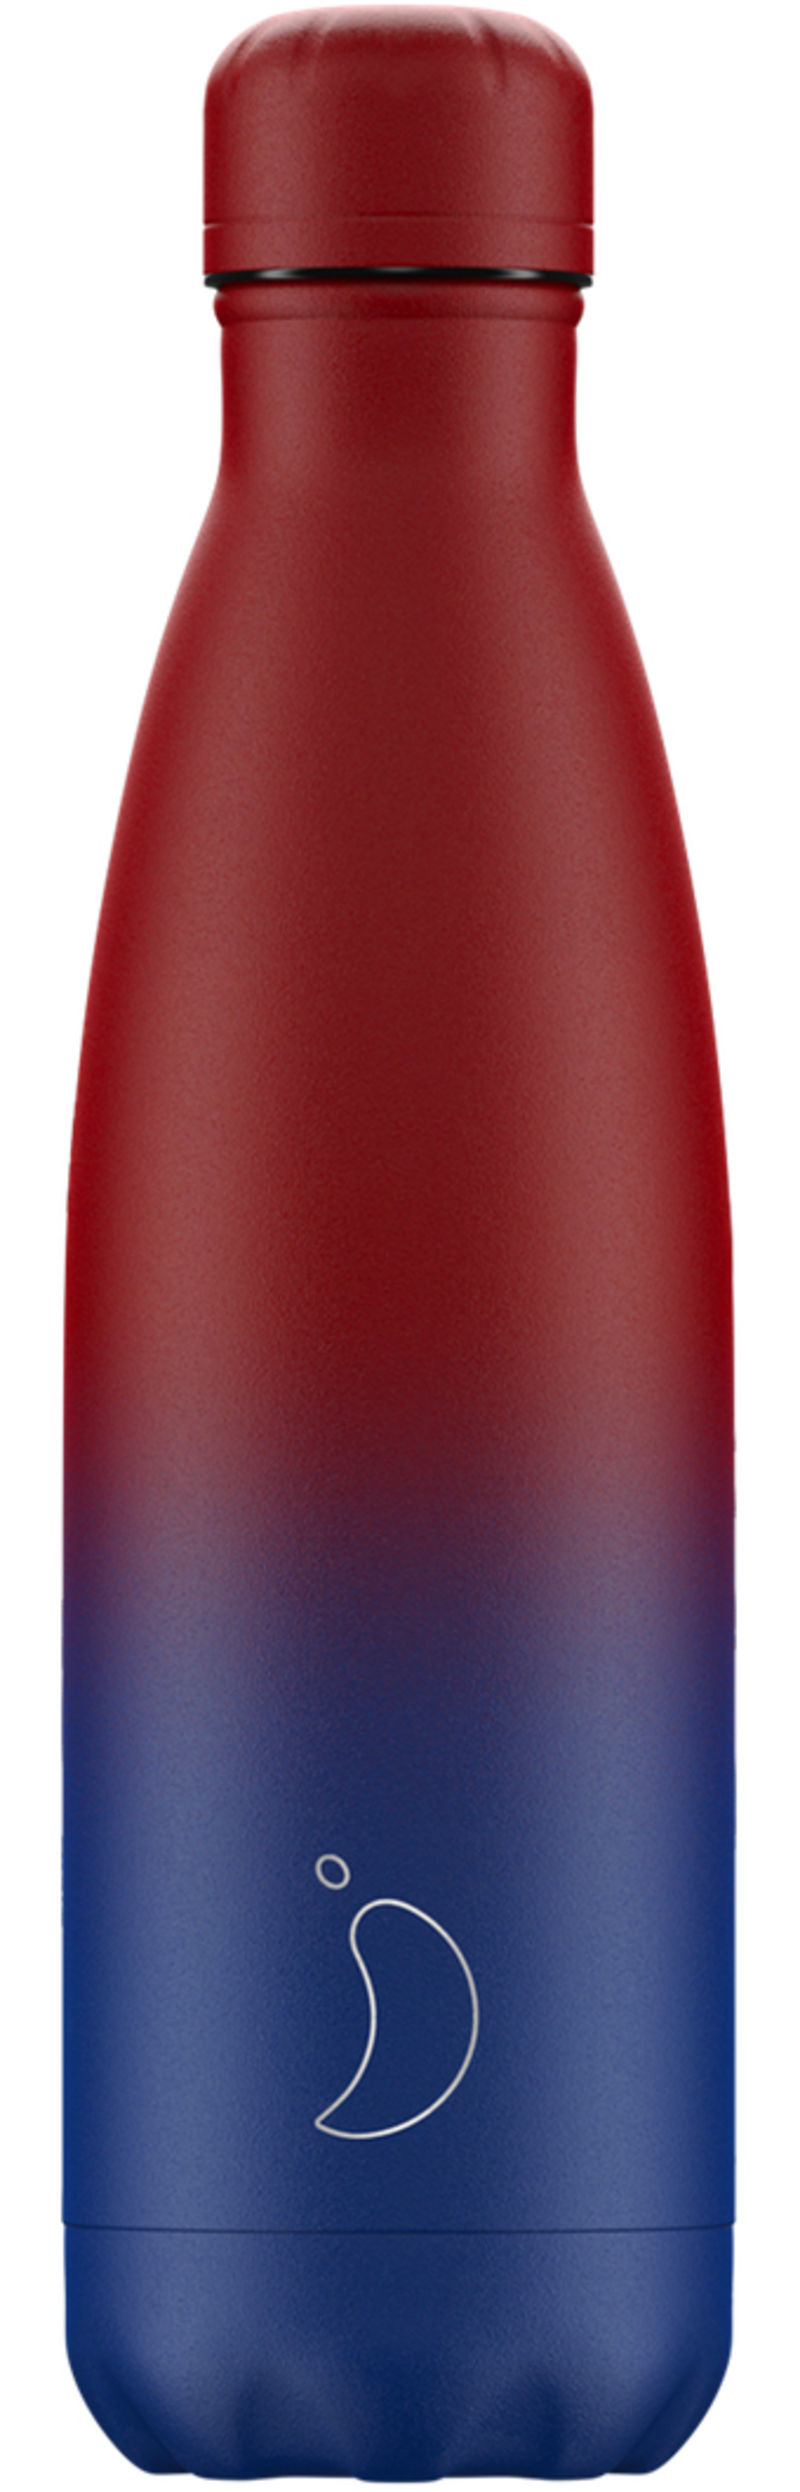 BOTELLA INOX GRADIENT MATE AZUL&ROSA 500ML